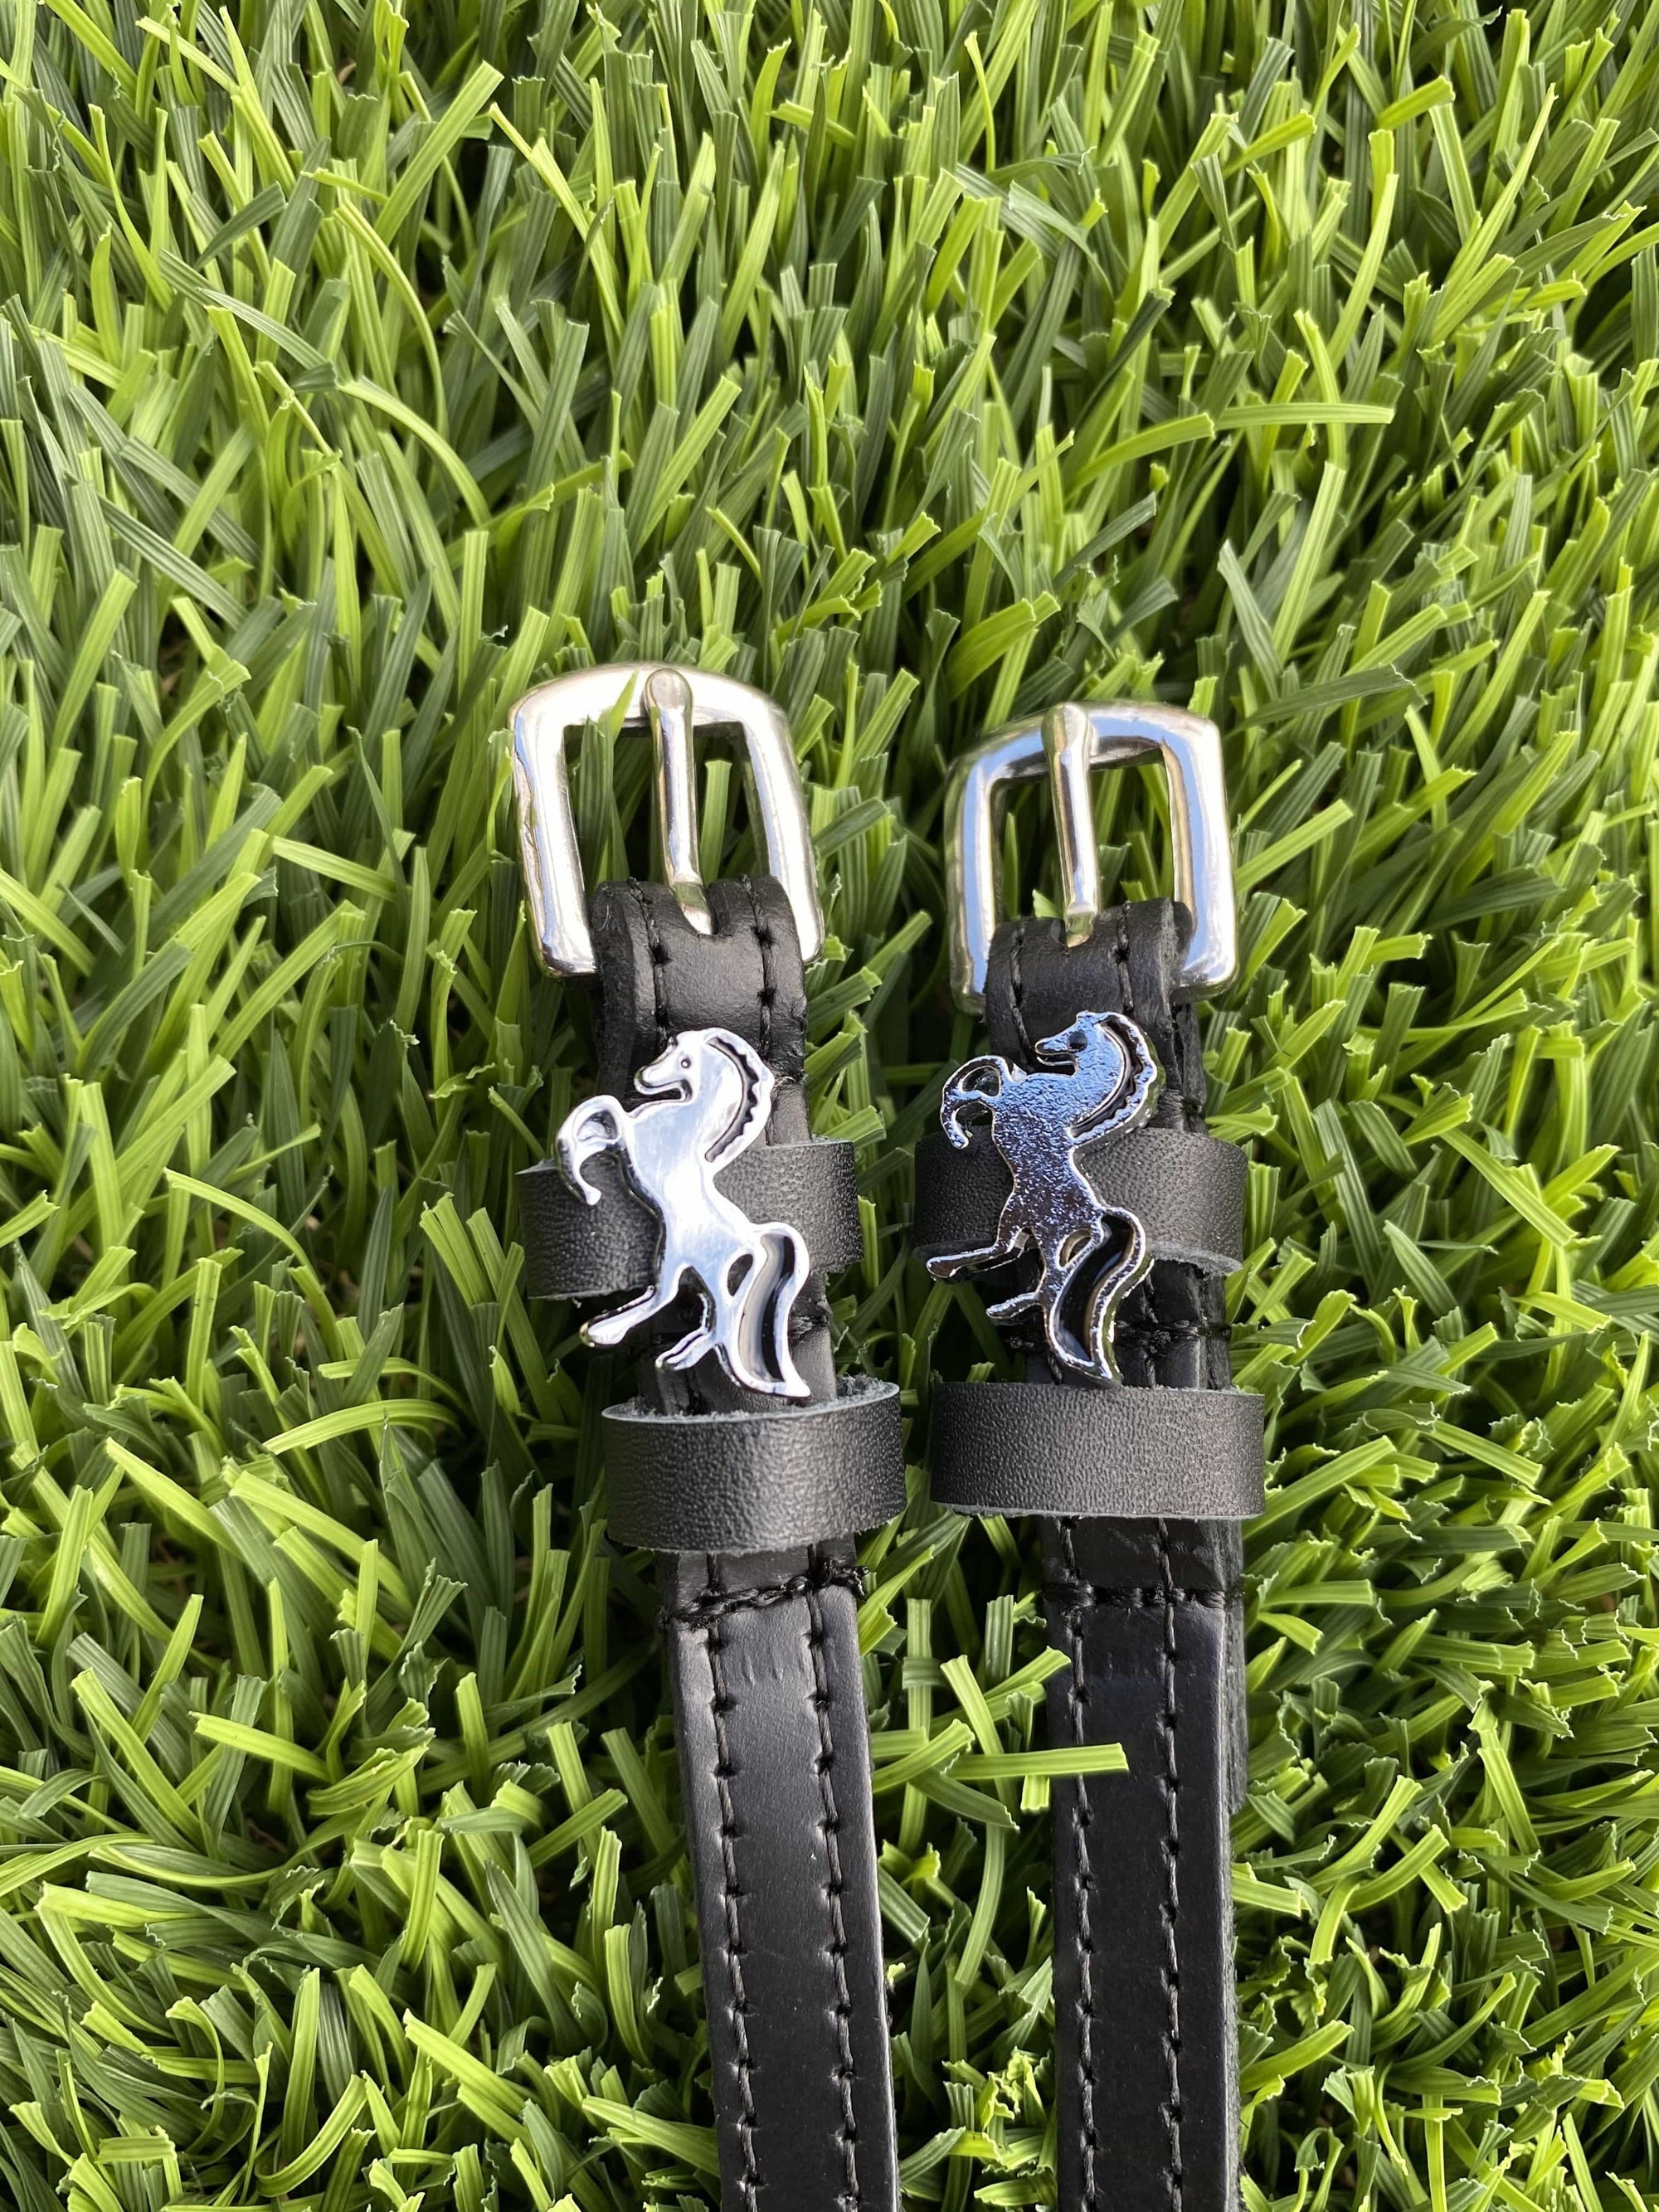 ManeJane Black Spur Straps Silver Pony Power equestrian team apparel online tack store mobile tack store custom farm apparel custom show stable clothing equestrian lifestyle horse show clothing riding clothes horses equestrian tack store